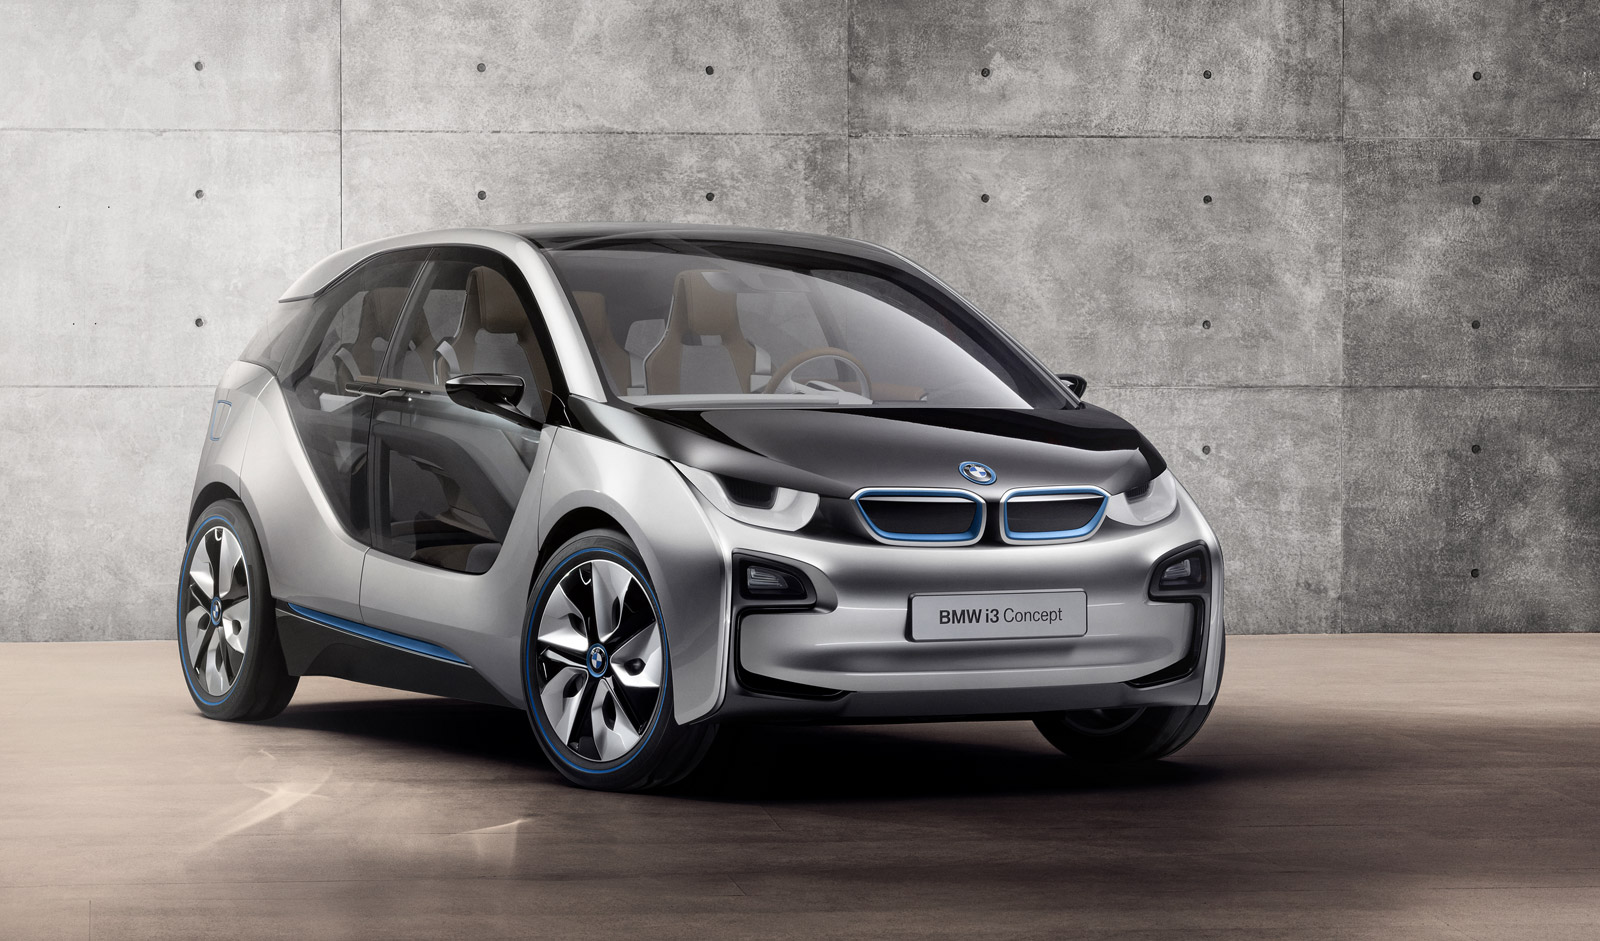 bmw i3 electric car i8 plug in hybrid first rides for journalists. Black Bedroom Furniture Sets. Home Design Ideas